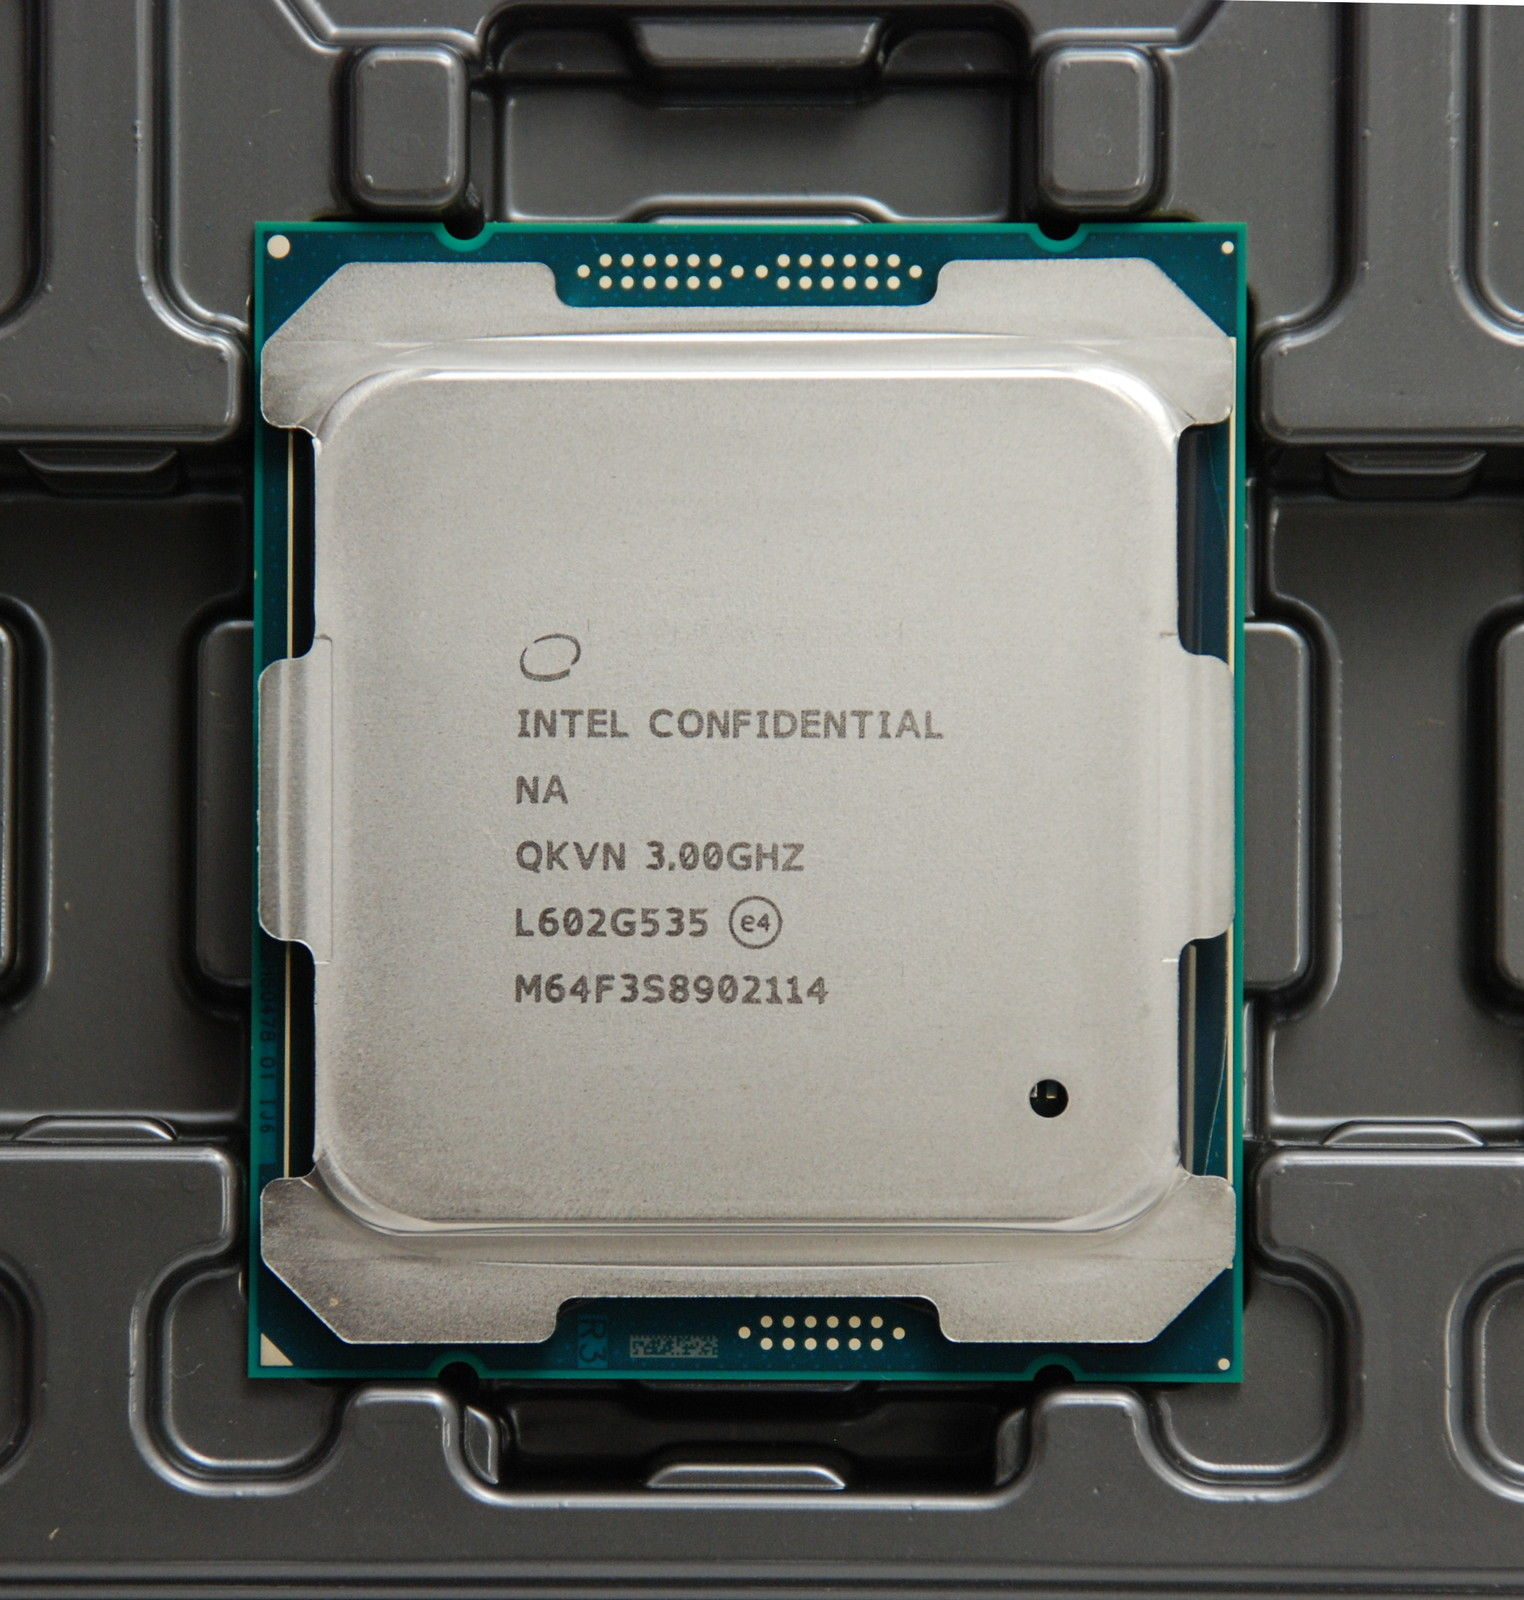 Intel Broadwell-E Core i7-6850K vs Core i7-5820K Haswell-E Benchmark Results Leaked - Clock-To ...